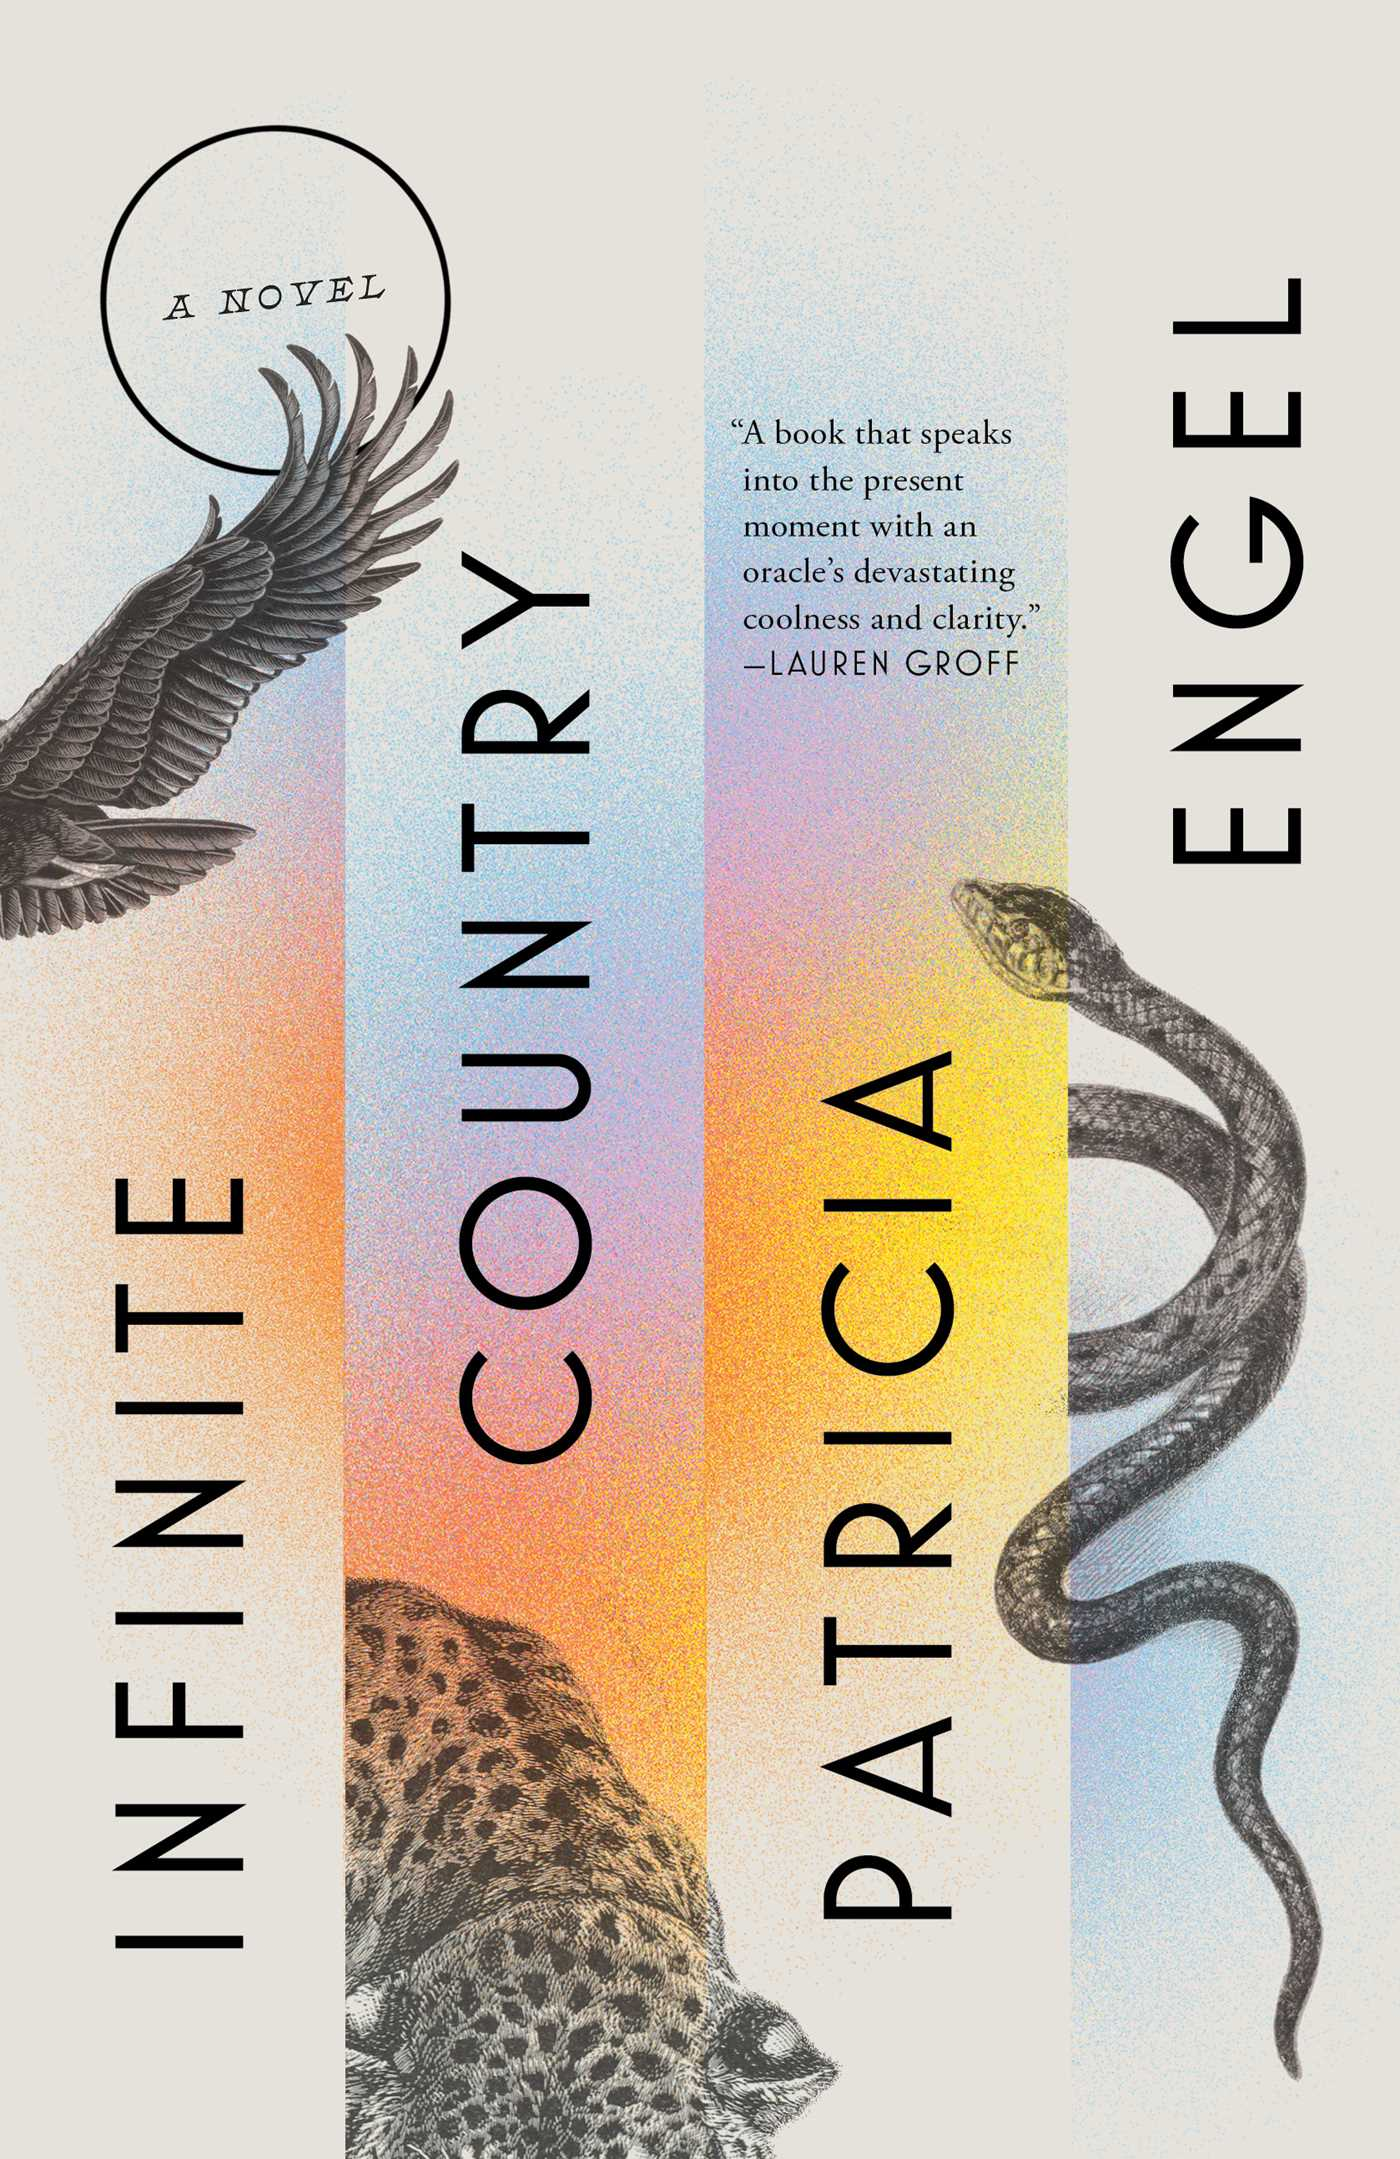 Colombian Literature Undocumented Refugee Story